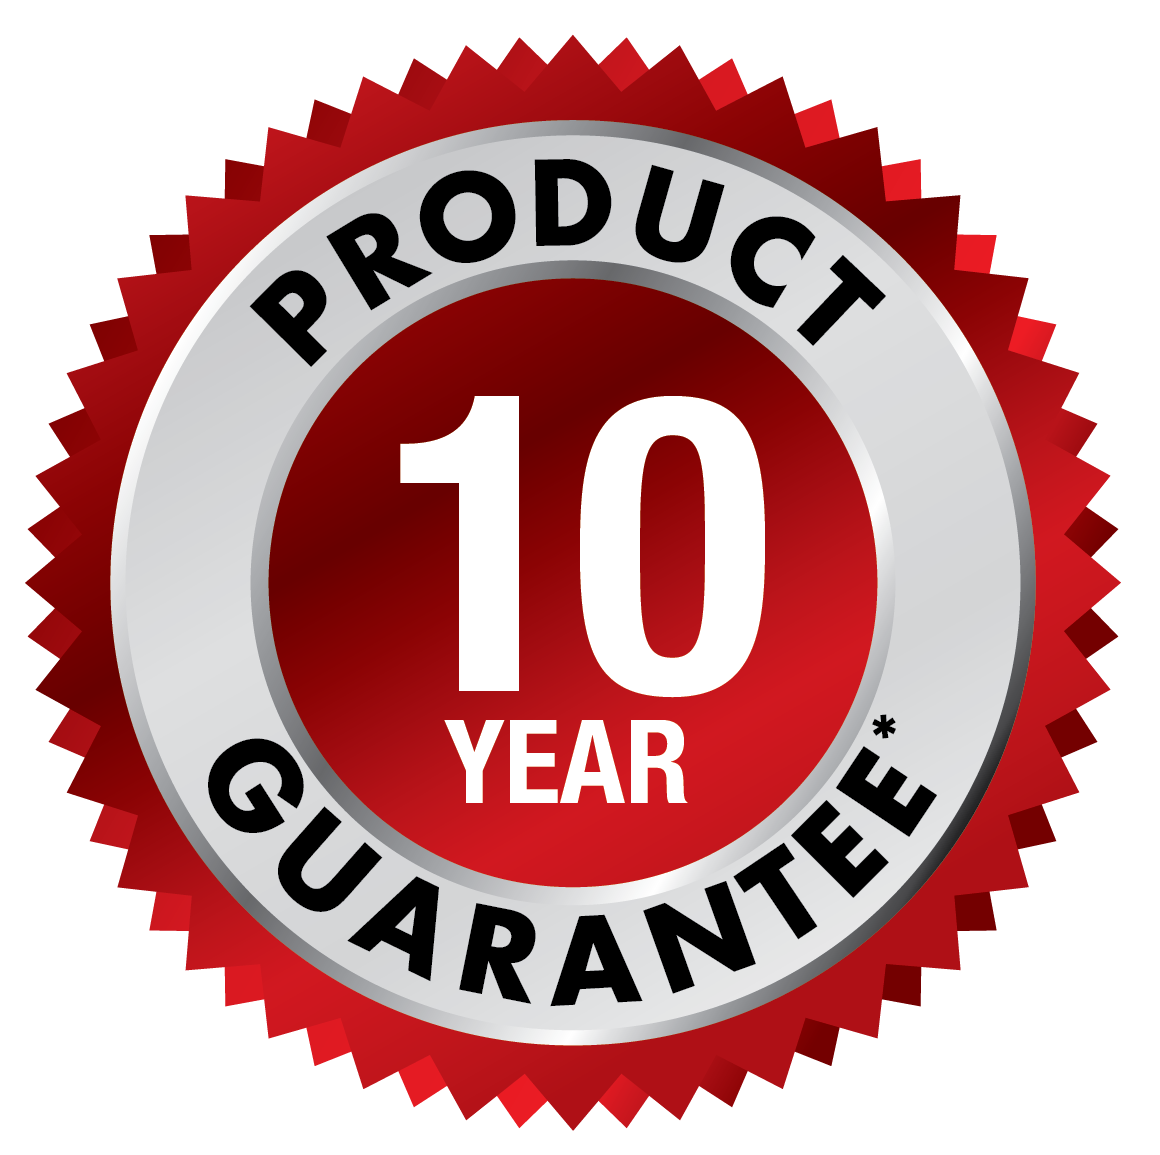 10 Year Guarantee USA